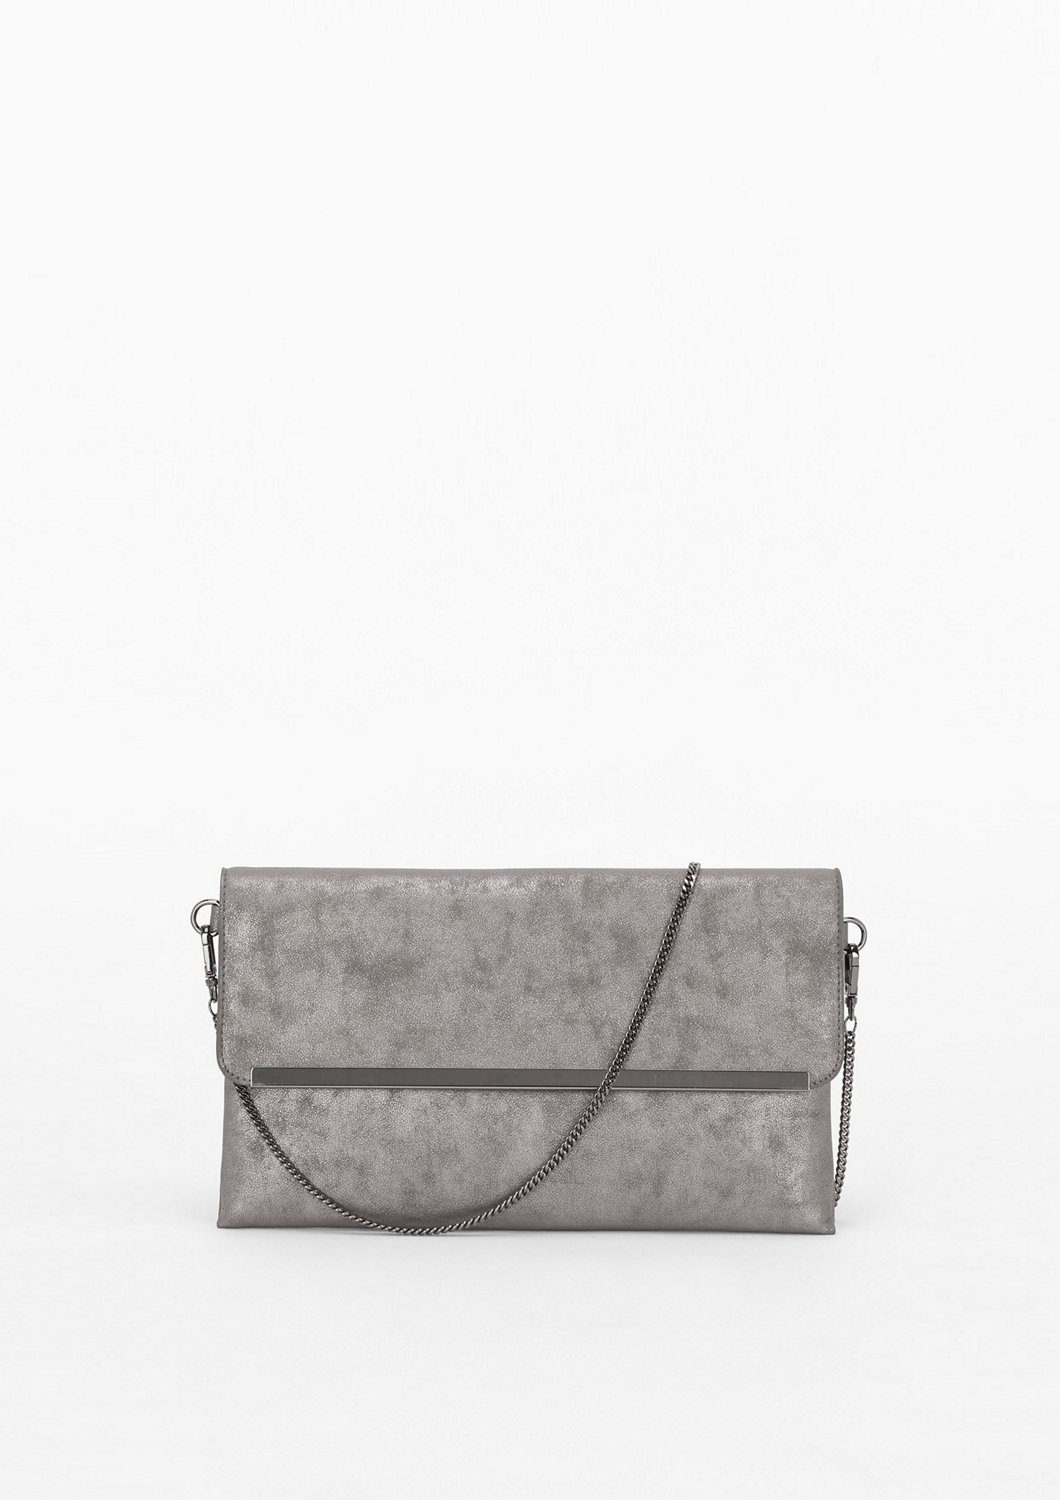 s.Oliver BLACK LABEL Envelope-Tasche im Metallic-Look